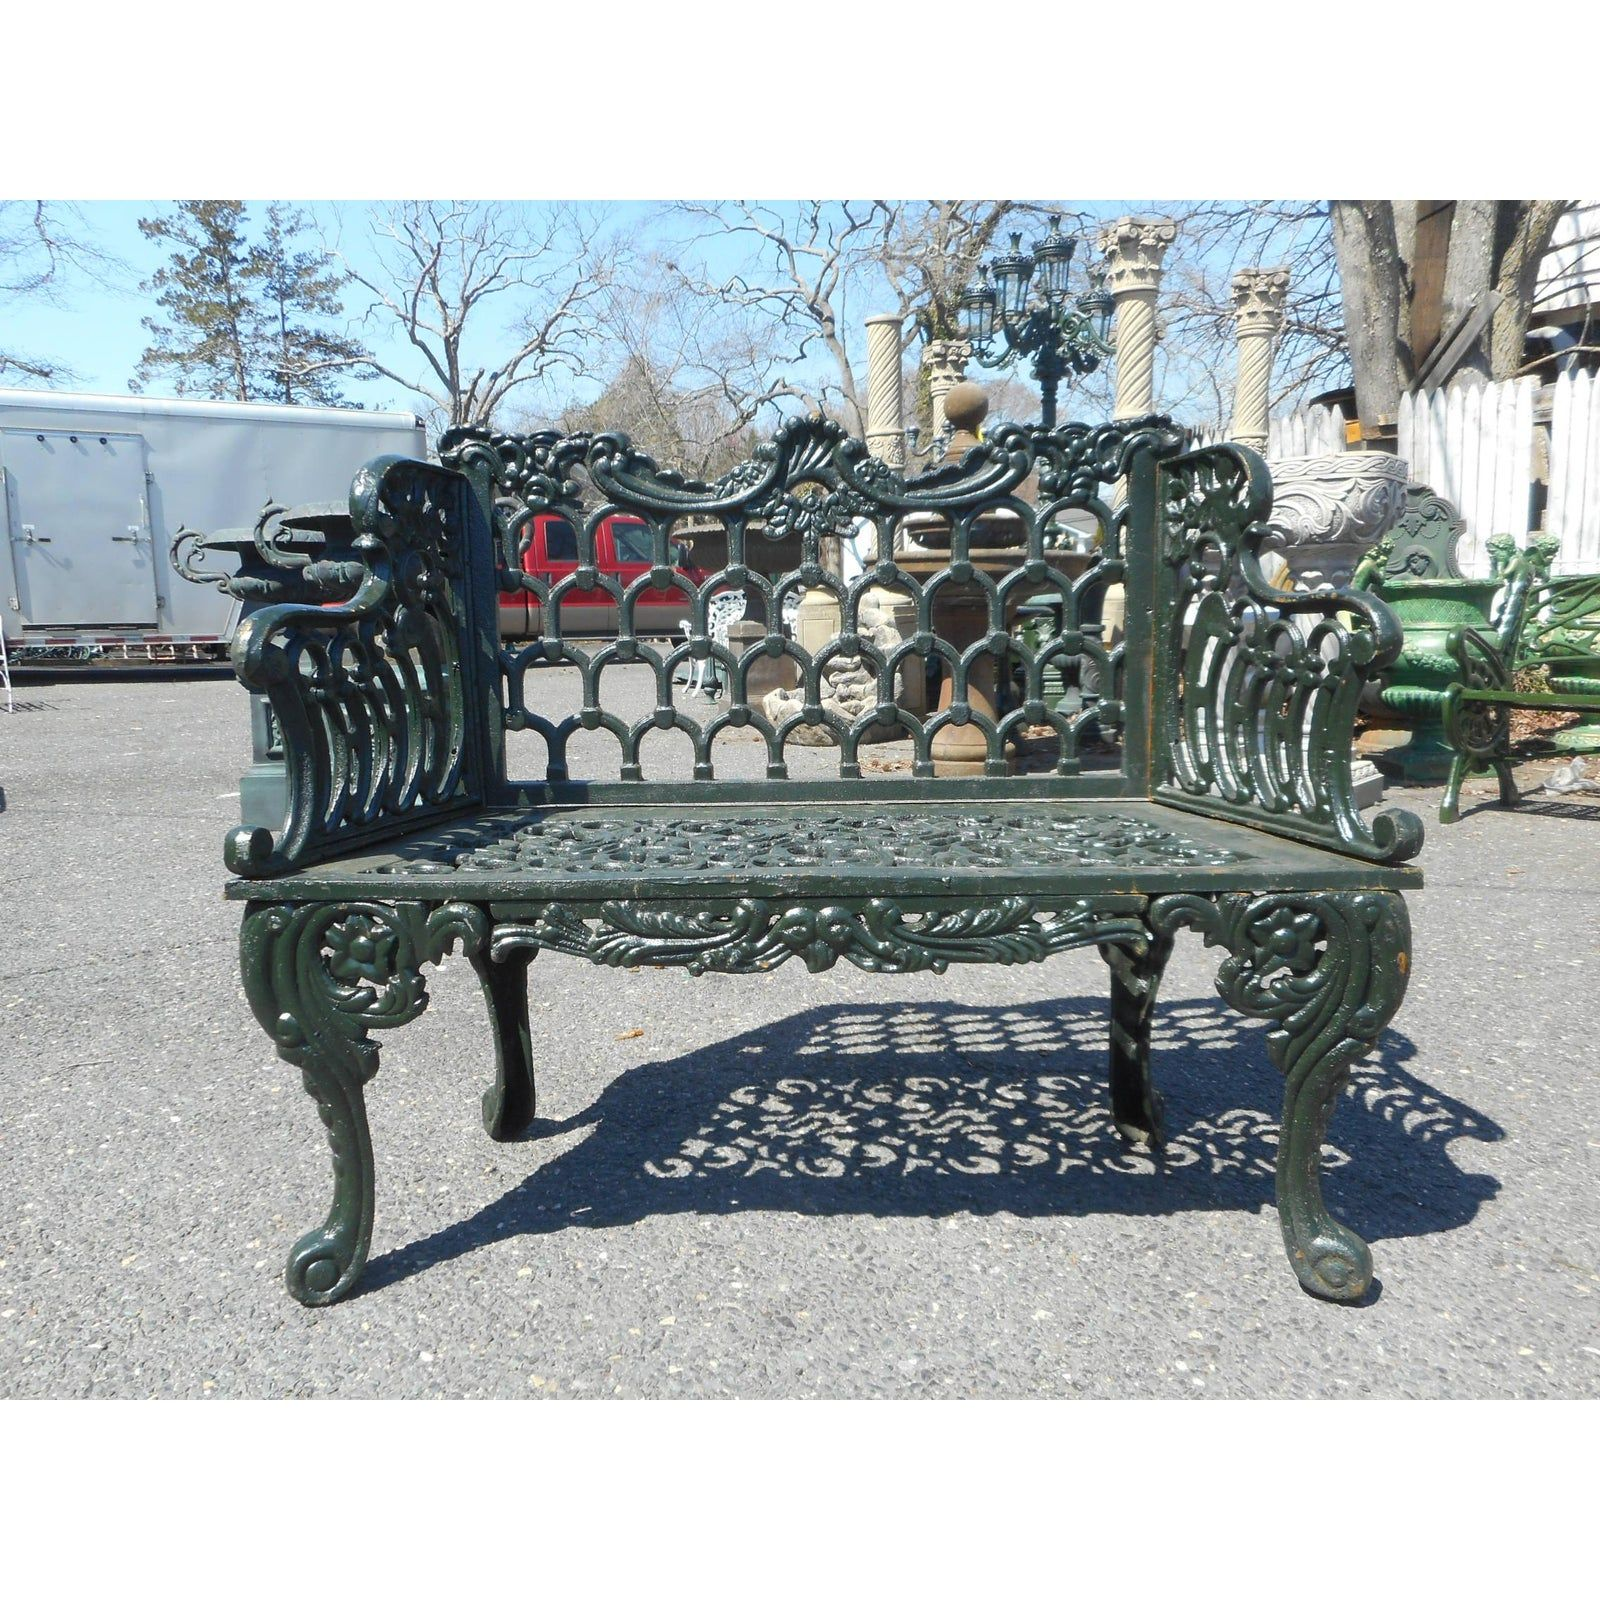 Sculpted Cast Iron Bench in 2020 Cast iron bench, Iron